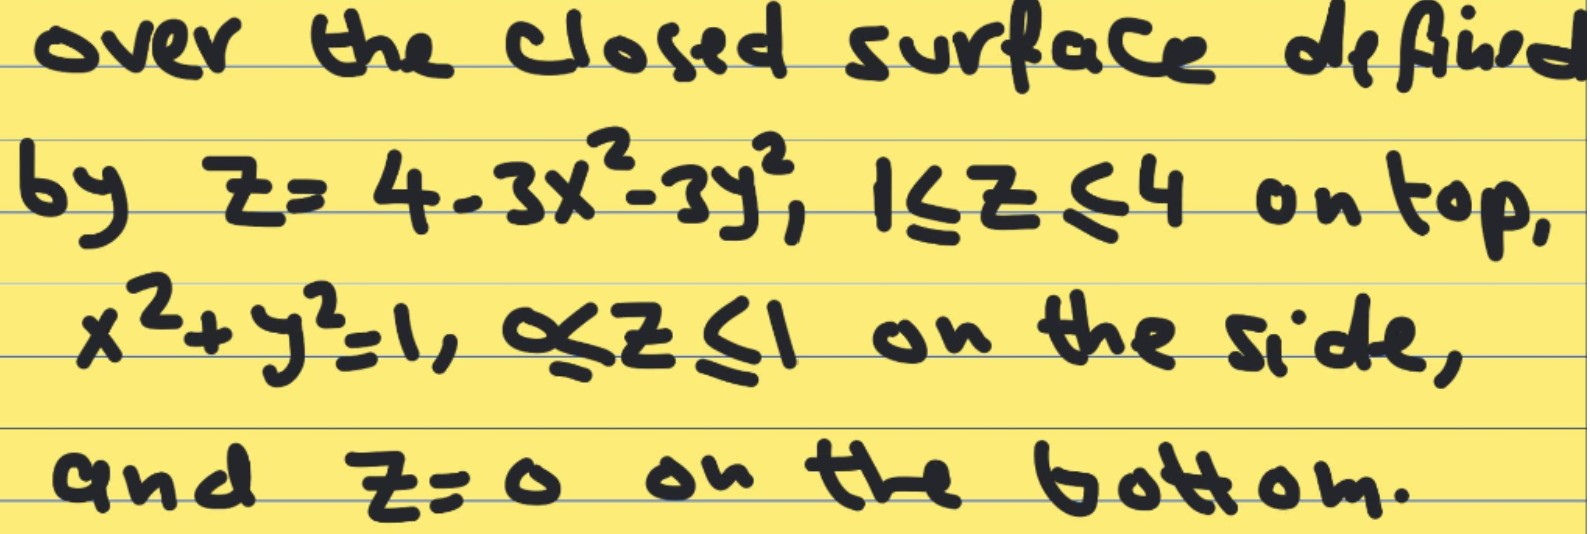 over the closed surface defined by Z= 4.3x²-3y?, ILZ (4 on top, x² + y²1, QZ SI on the side, and Zoo on the bottom.